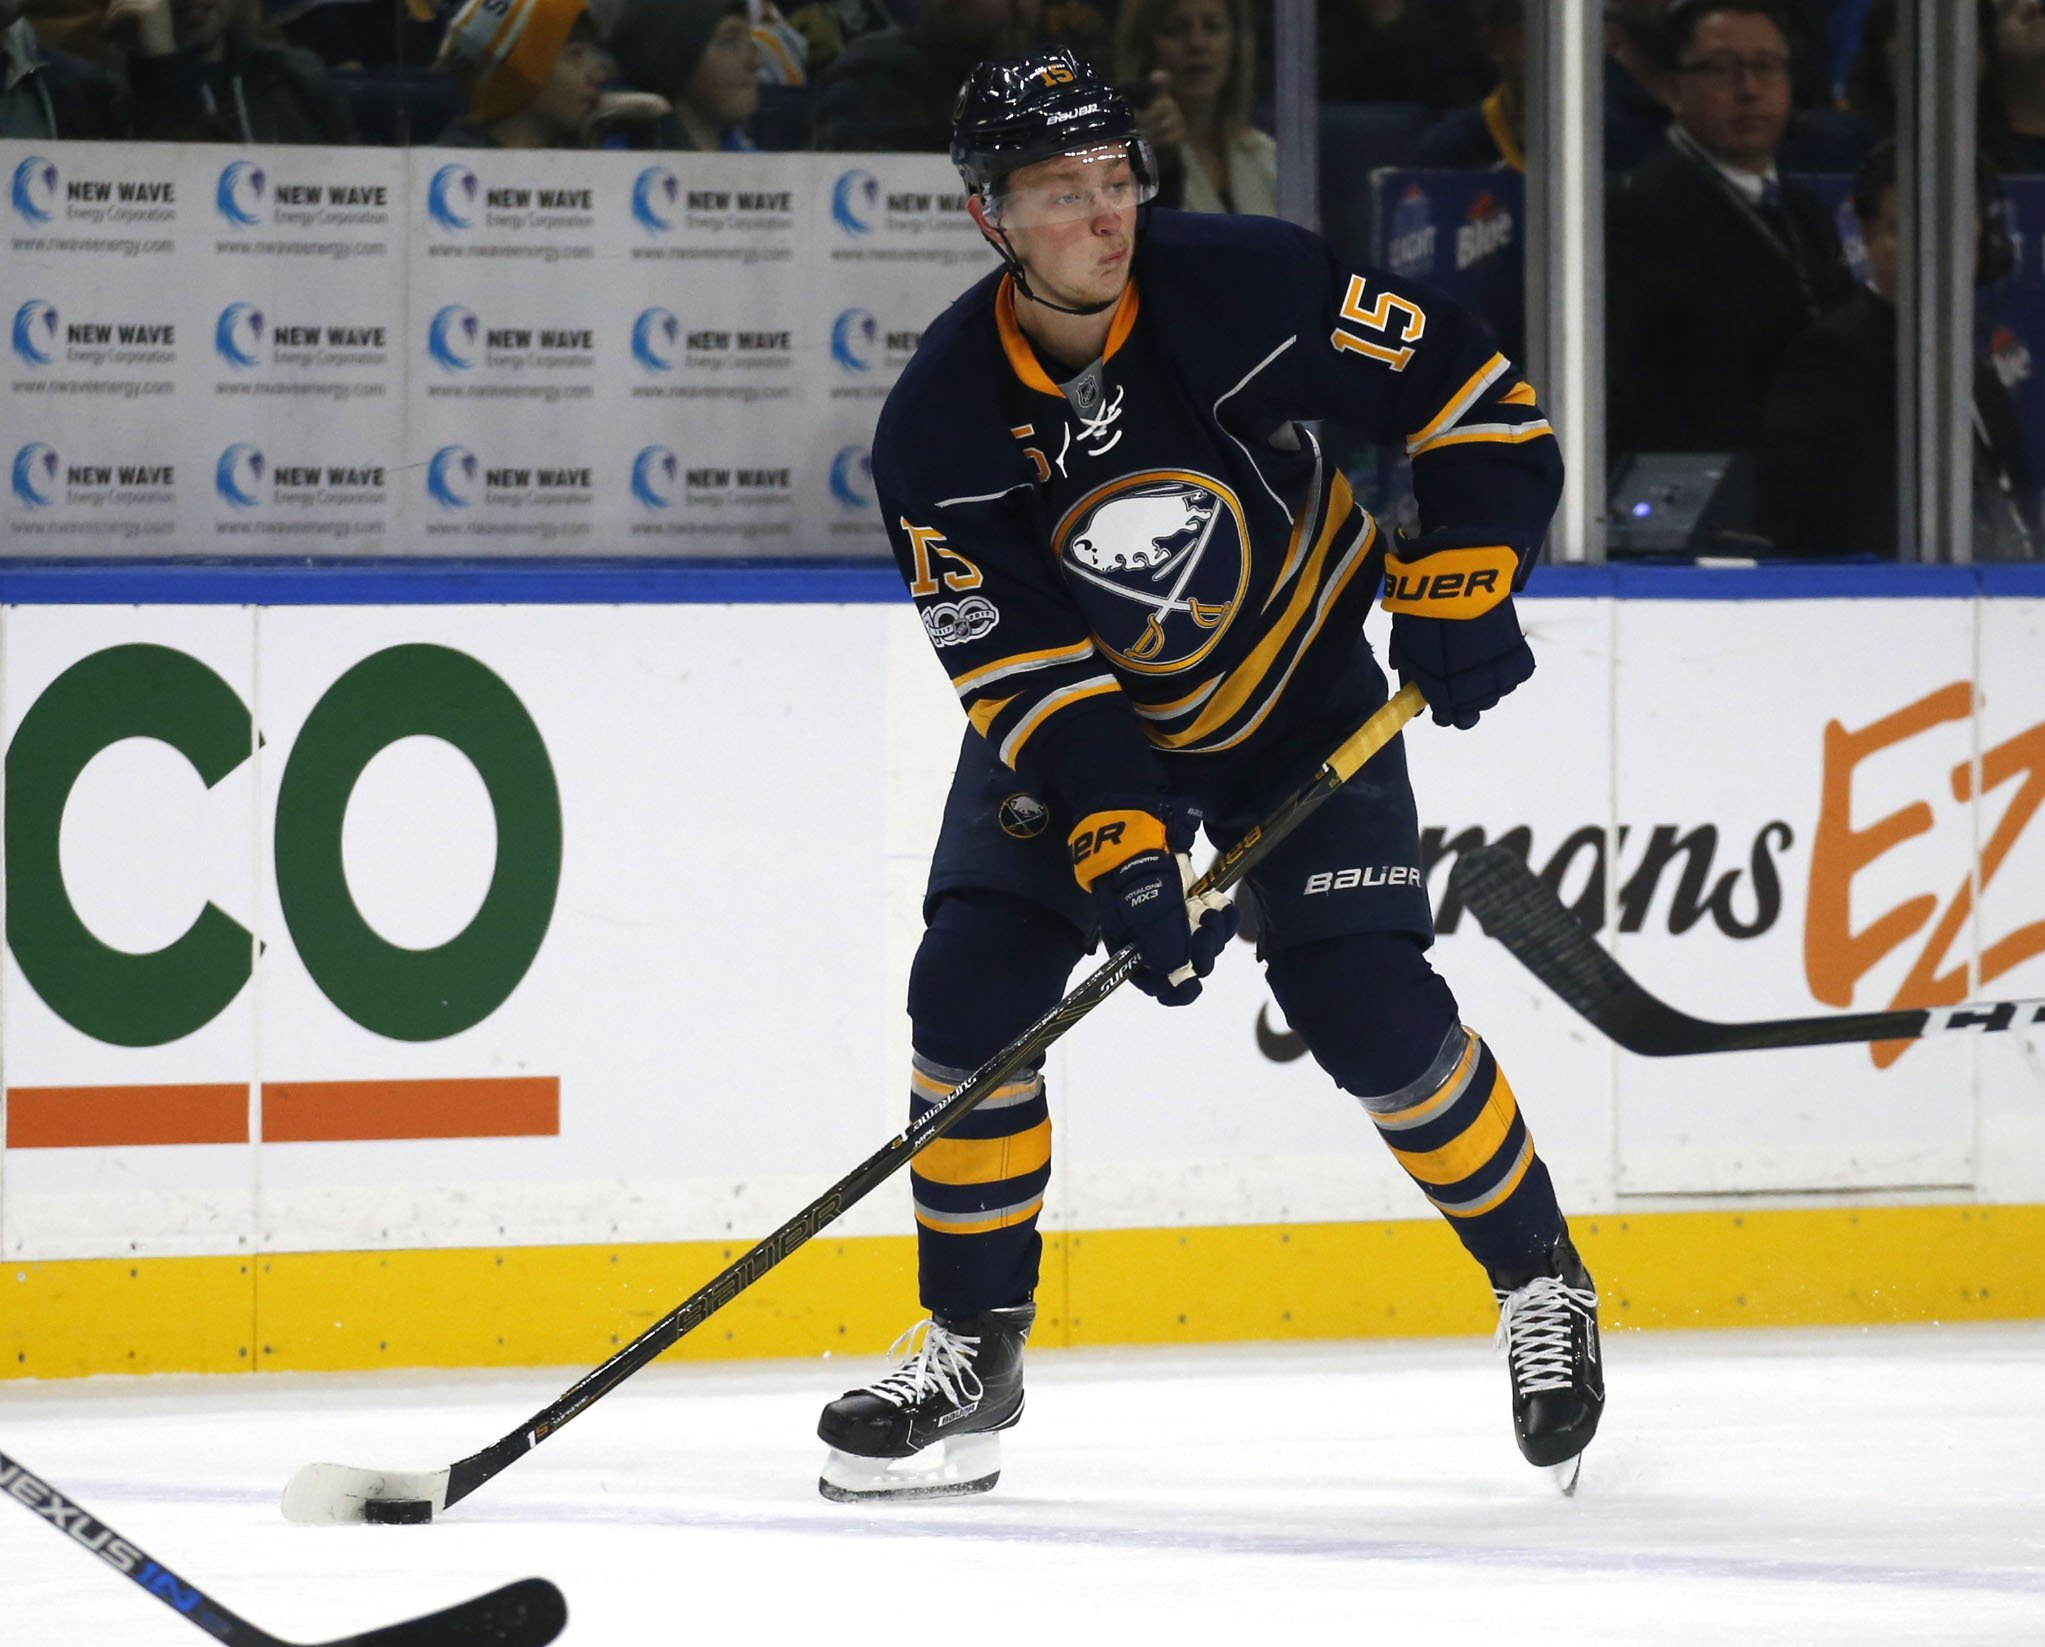 Jack Eichel is not expected to get much national TV exposure this year, but that could change. (Robert Kirkham/Buffalo News)